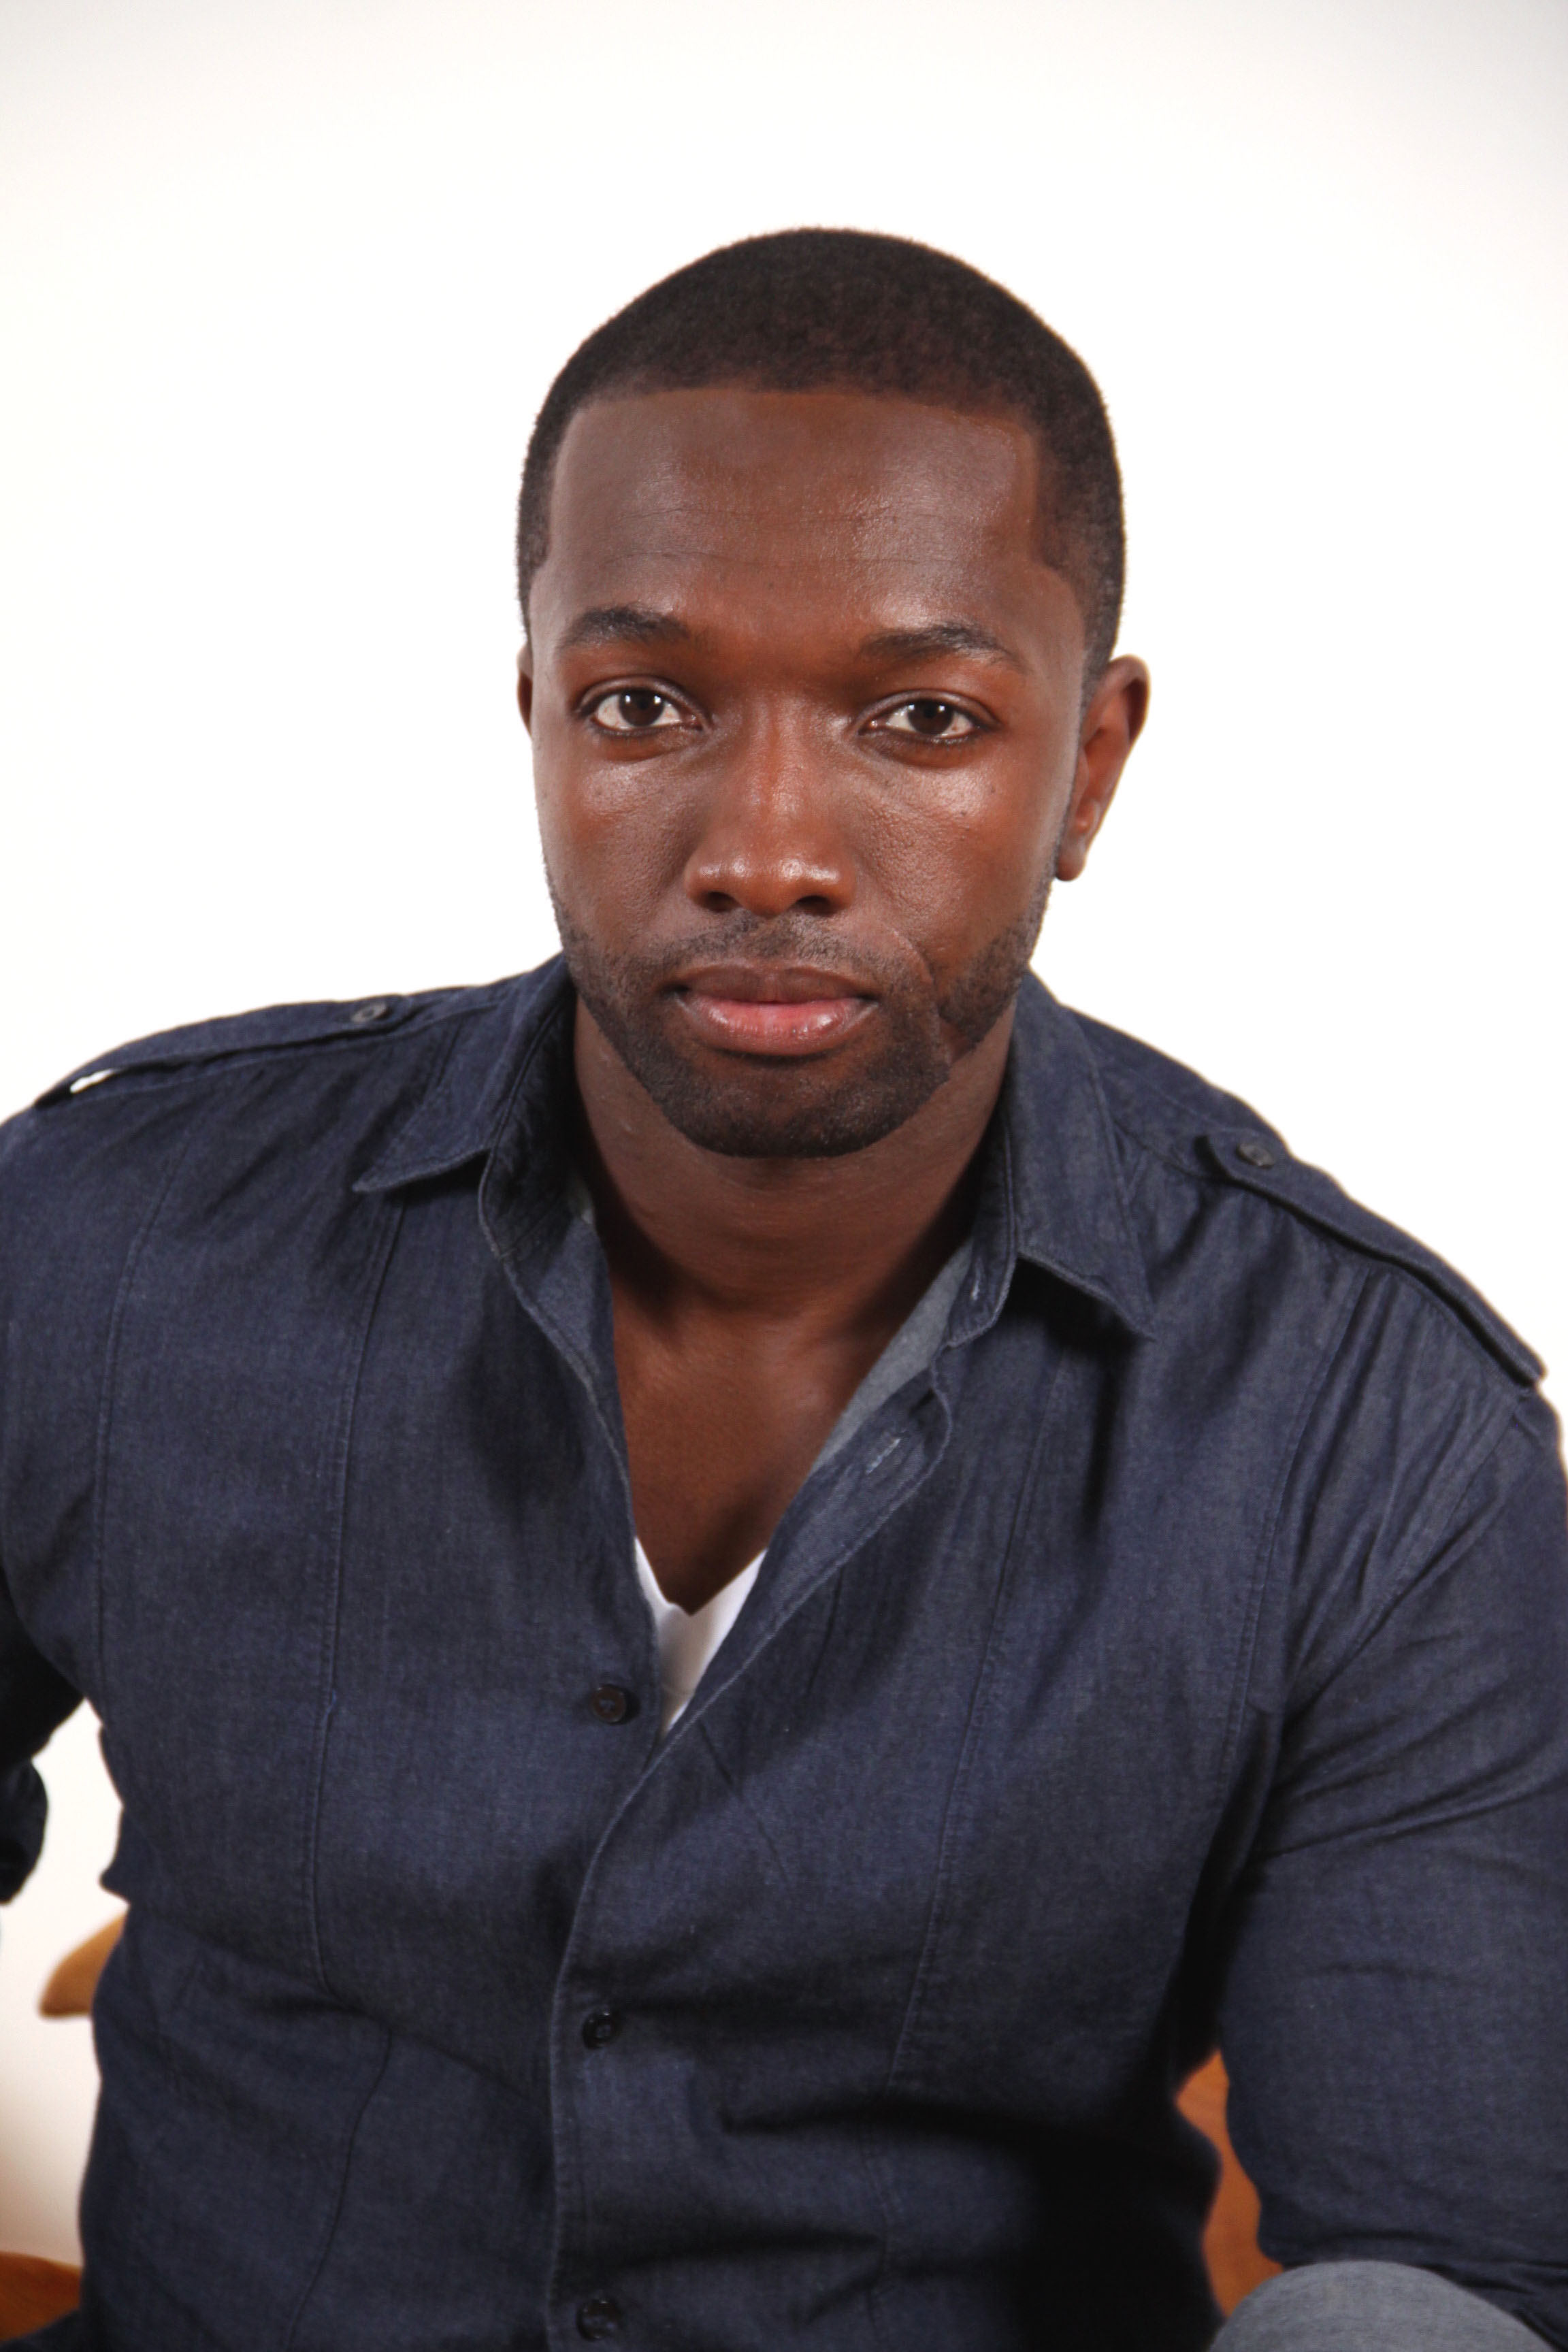 The 43-year old son of father (?) and mother(?) Jamie Hector in 2018 photo. Jamie Hector earned a  million dollar salary - leaving the net worth at 1 million in 2018